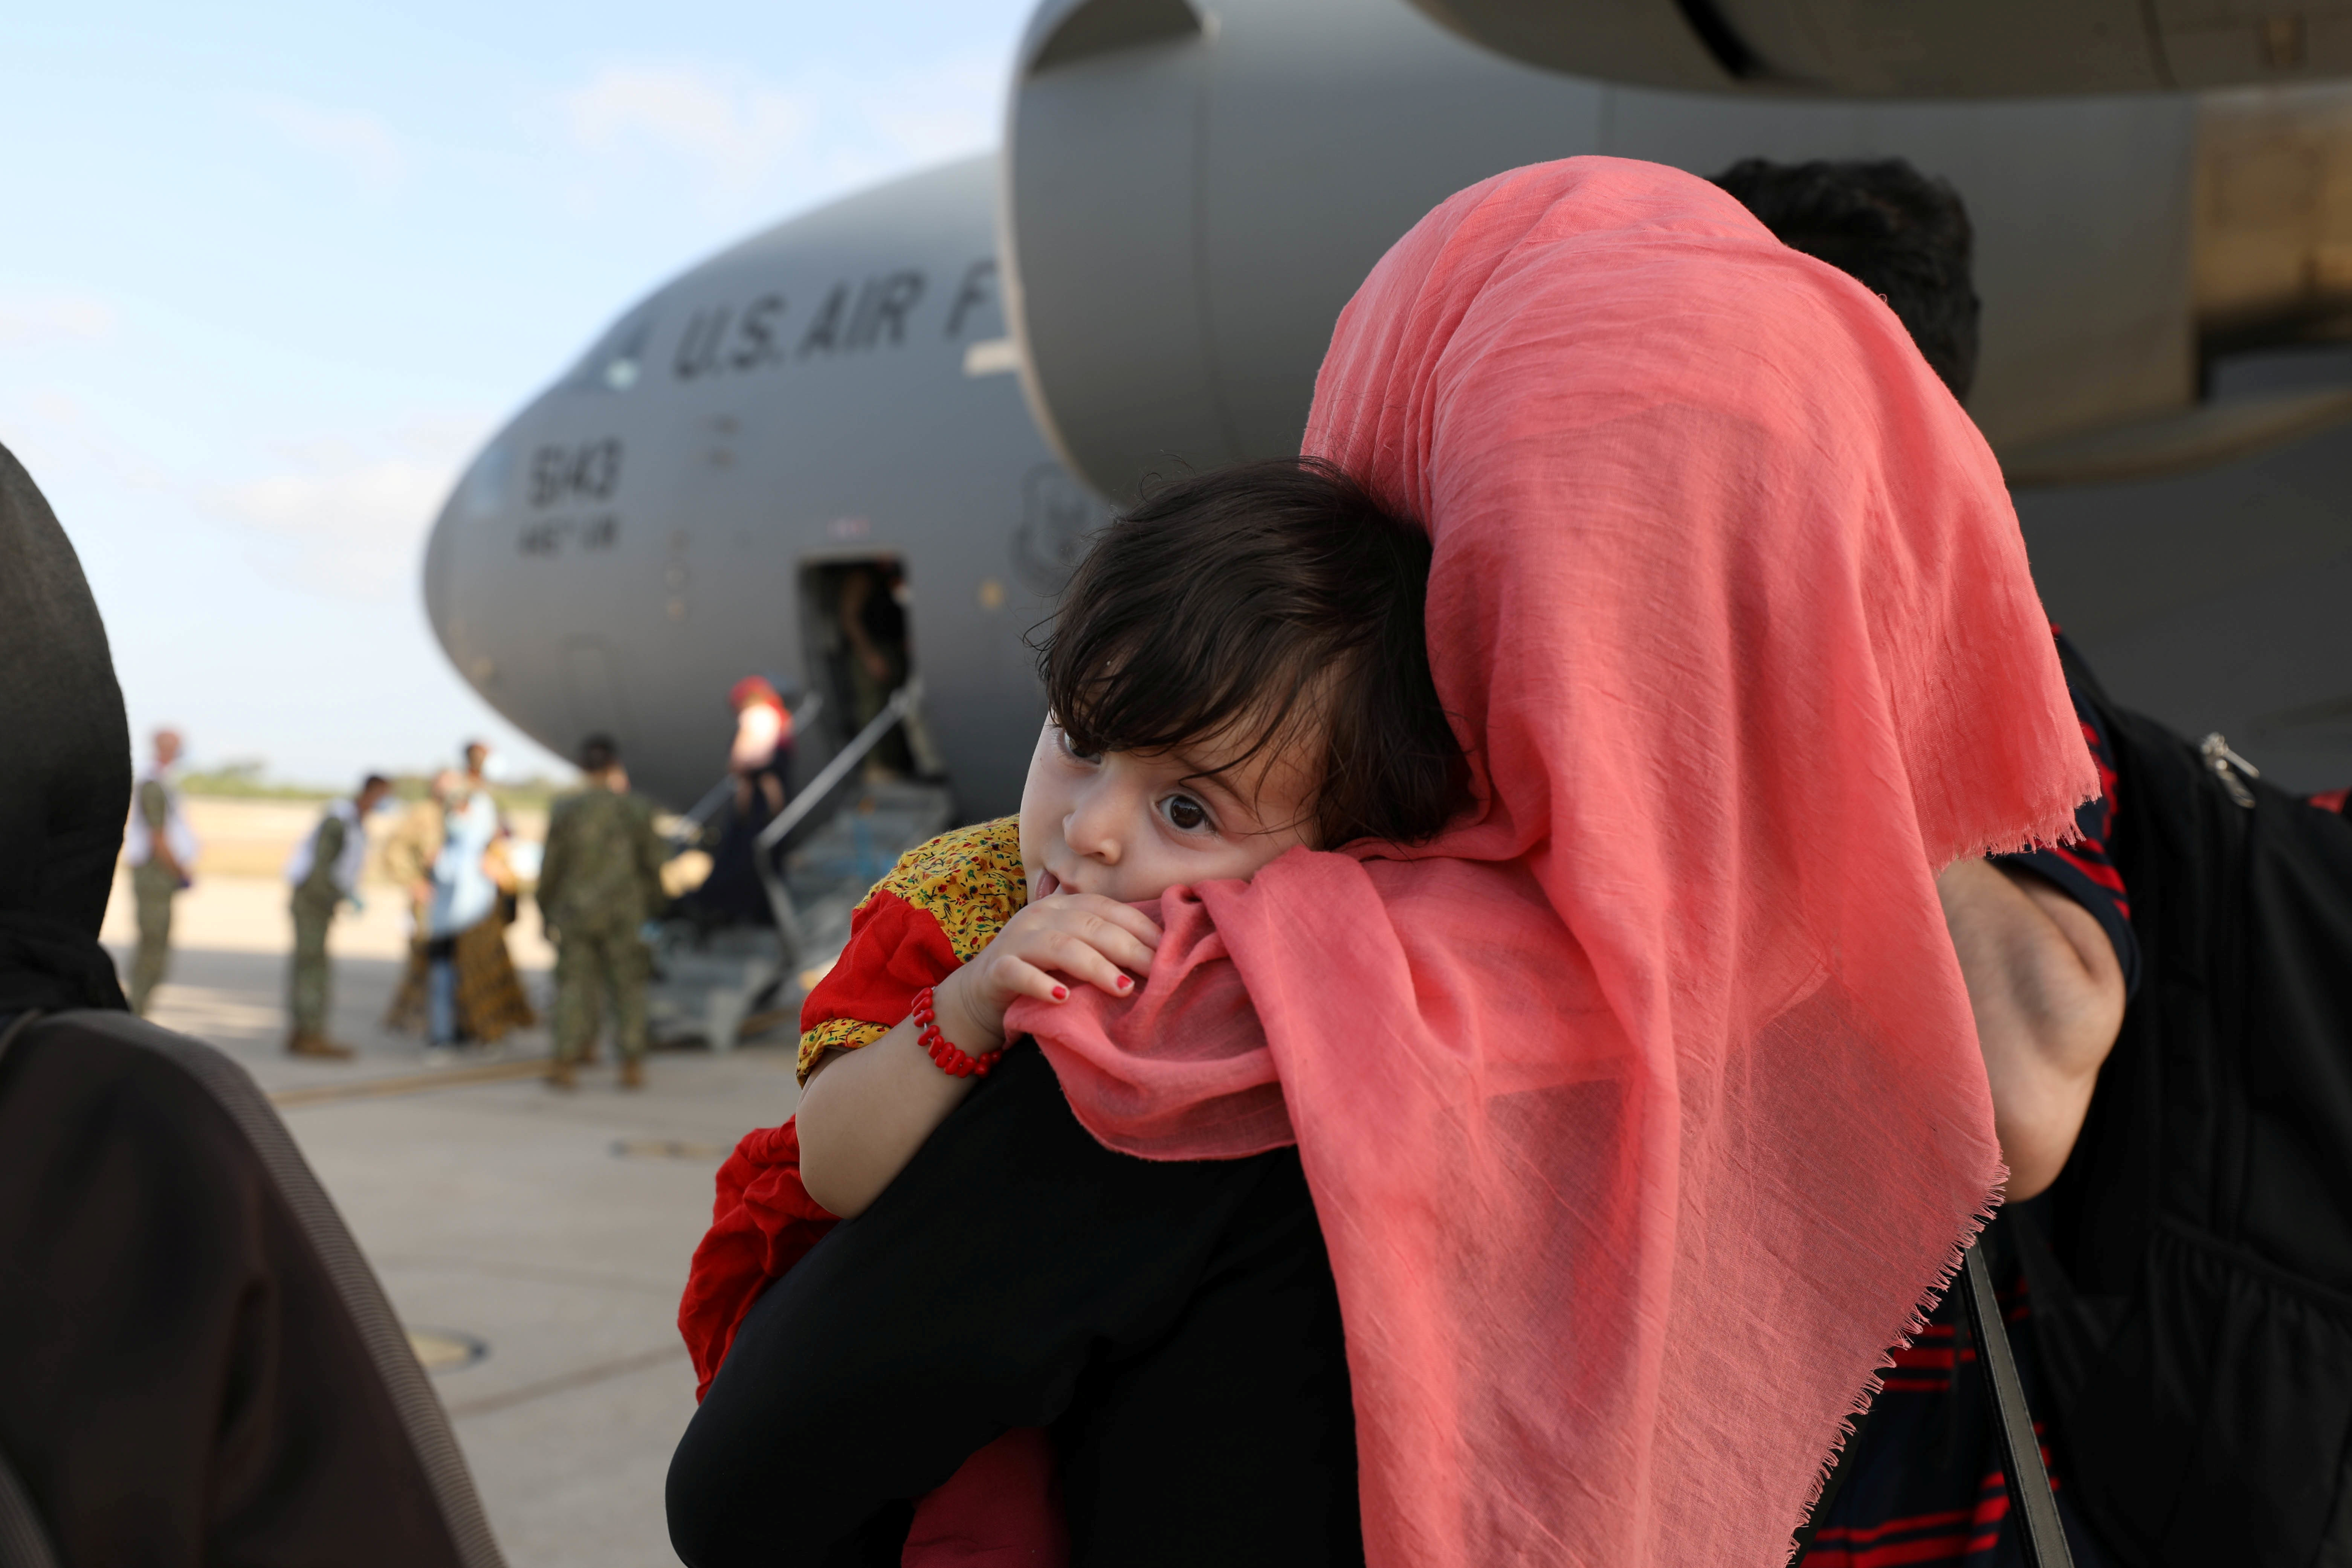 Evacuees from Afghanistan watch others disembark the aircraft after arriving at Naval Station (NAVSTA) Rota, Spain August 27, 2021. Picture taken August 27, 2021.  U.S. Navy/Mass Communication Specialist 2nd Class Katie Cox/Handout via REUTERS